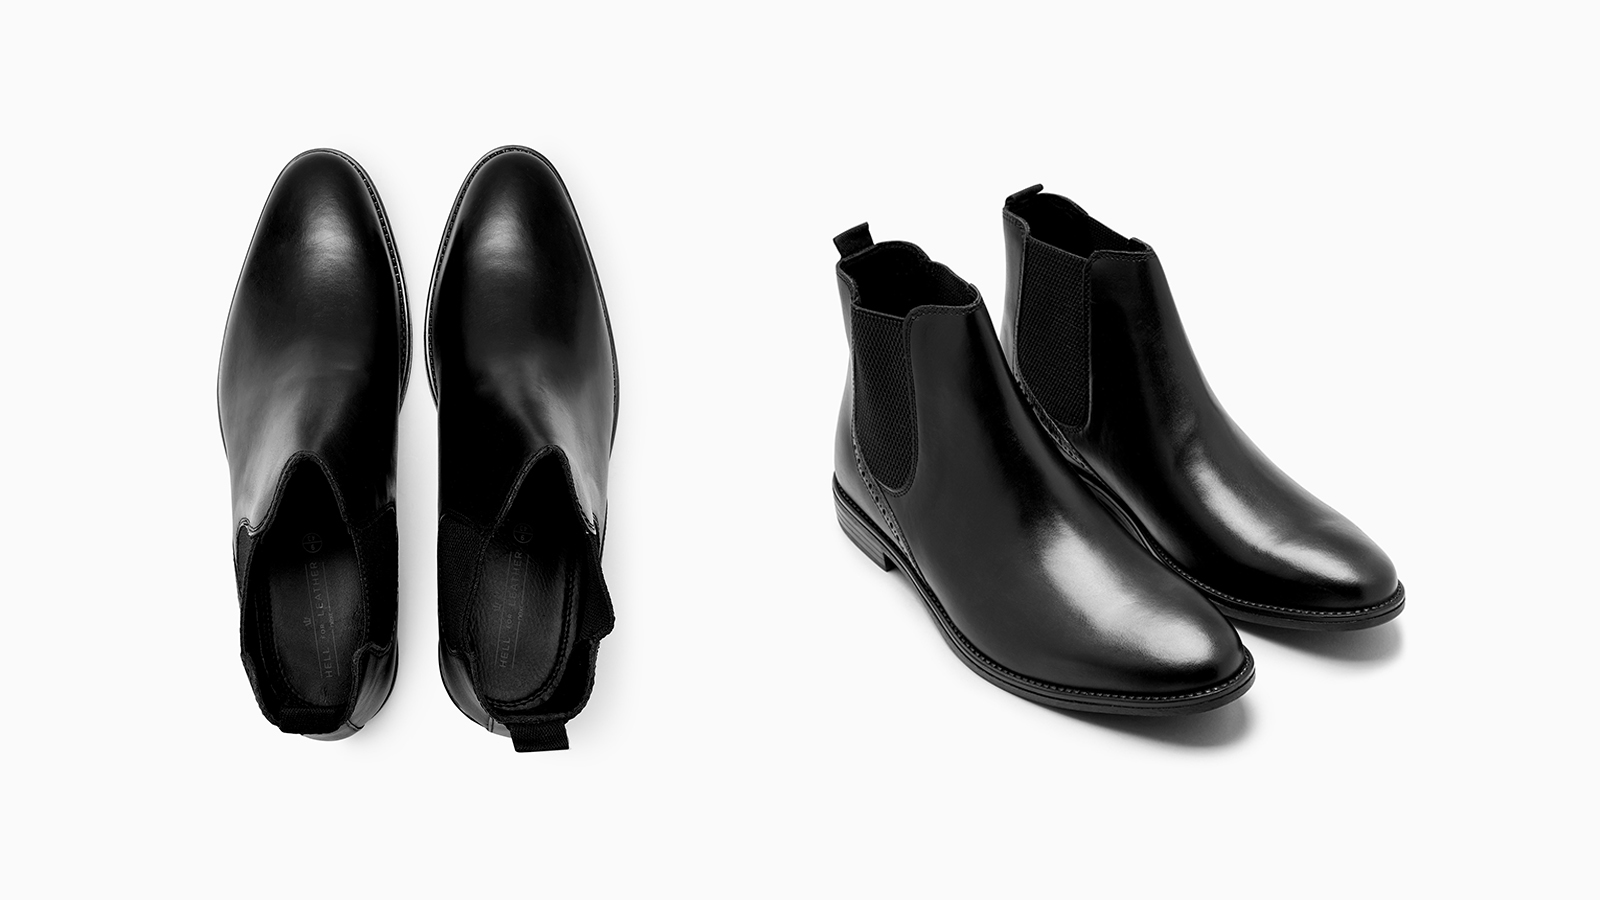 Thw winter boots you need now - Chelsea boots